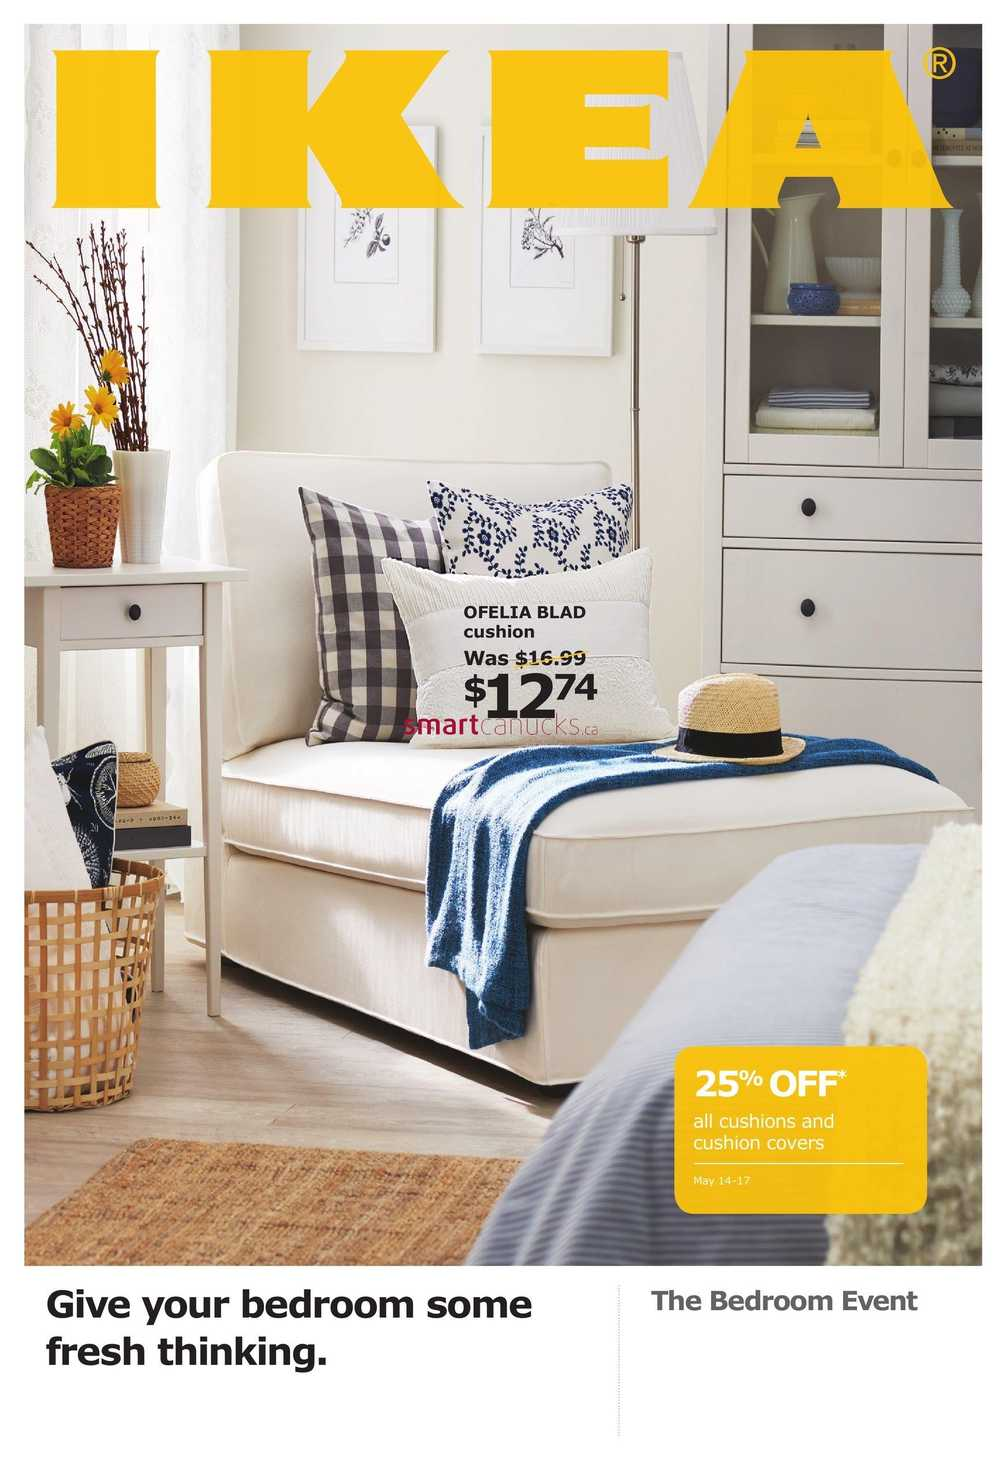 Ikea Bedroom Event Flyer May 13 to 13